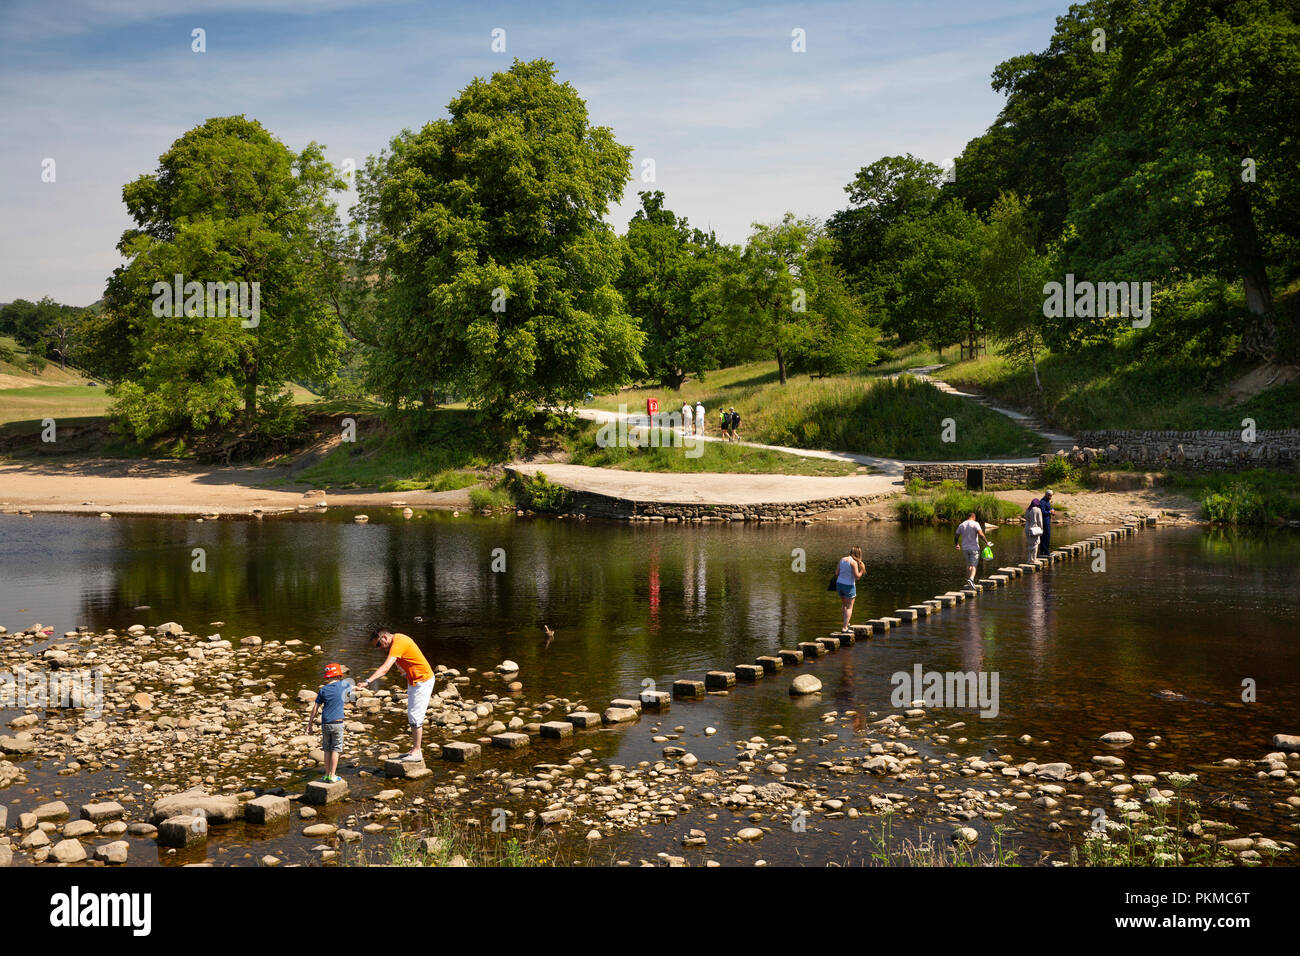 UK, Yorkshire, Wharfedale, Bolton Abbey, visitors crossing stepping stones over River Wharfe - Stock Image